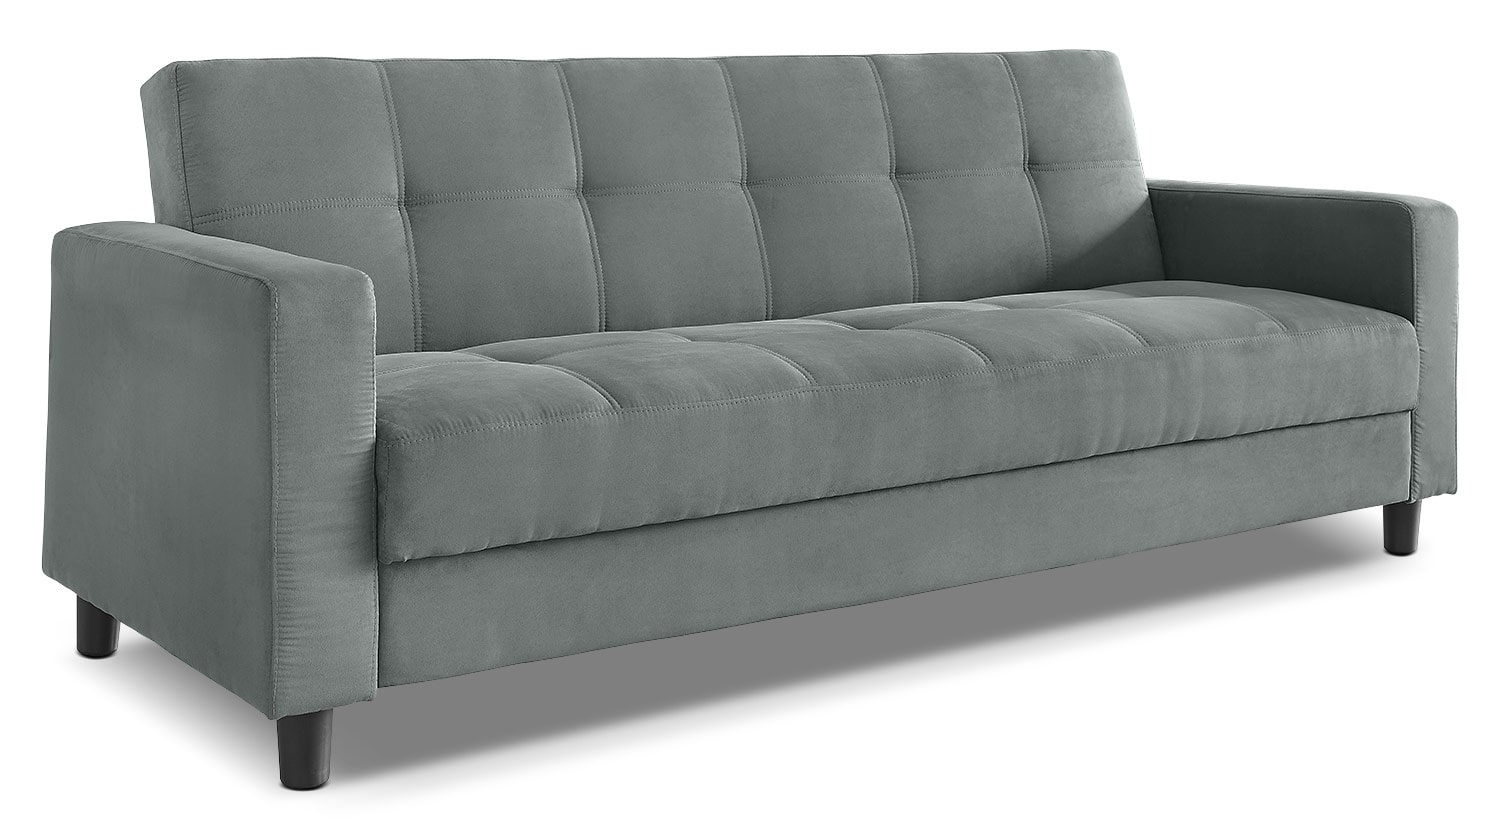 Grey sofa bed canada mjob blog for Sofa bed canada